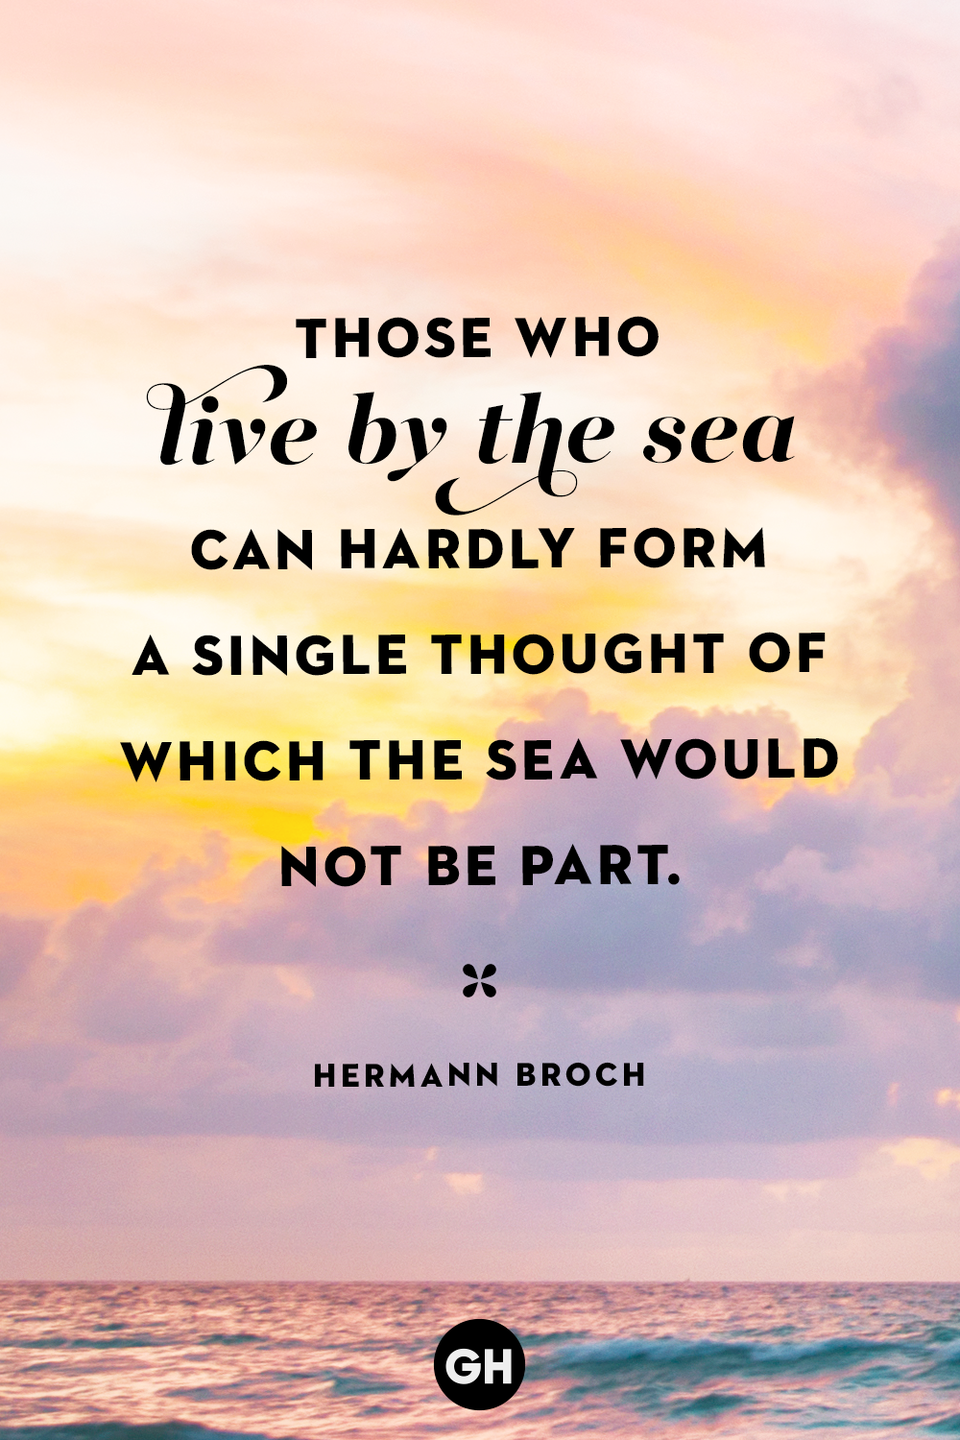 "<p>""Those who live by the sea can hardly form a single thought of which the sea would not be part.""</p>"